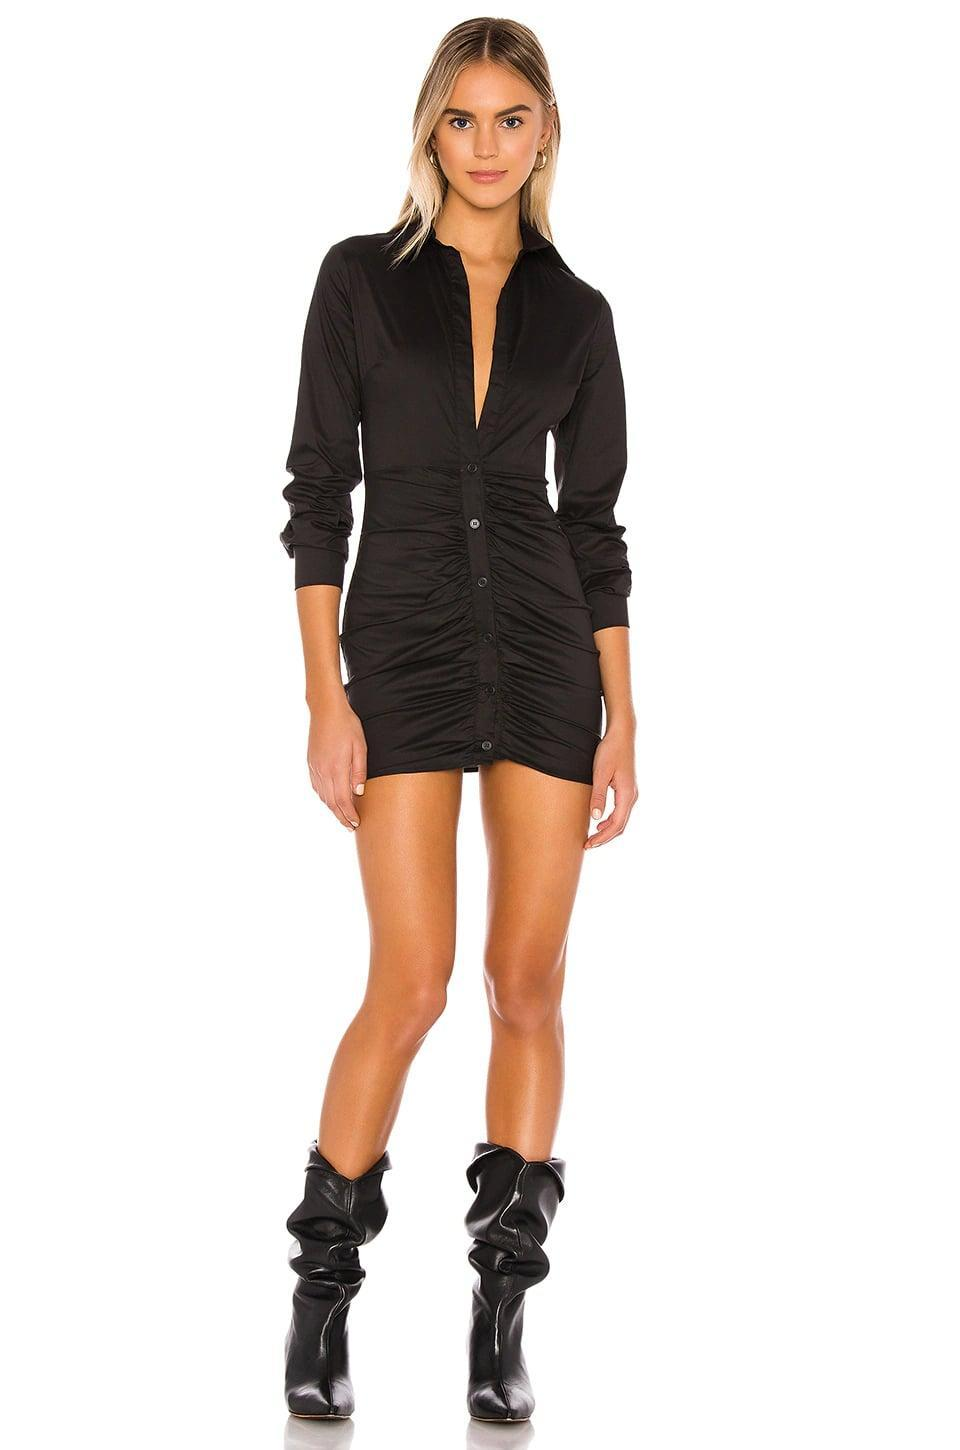 <p>With a low neckline and a high hemline, this <span>Superdown Colette Ruched Shirt Dress</span> ($66) is a fun choice for a night out. It looks great with knee-high boots or strappy sandals.</p>